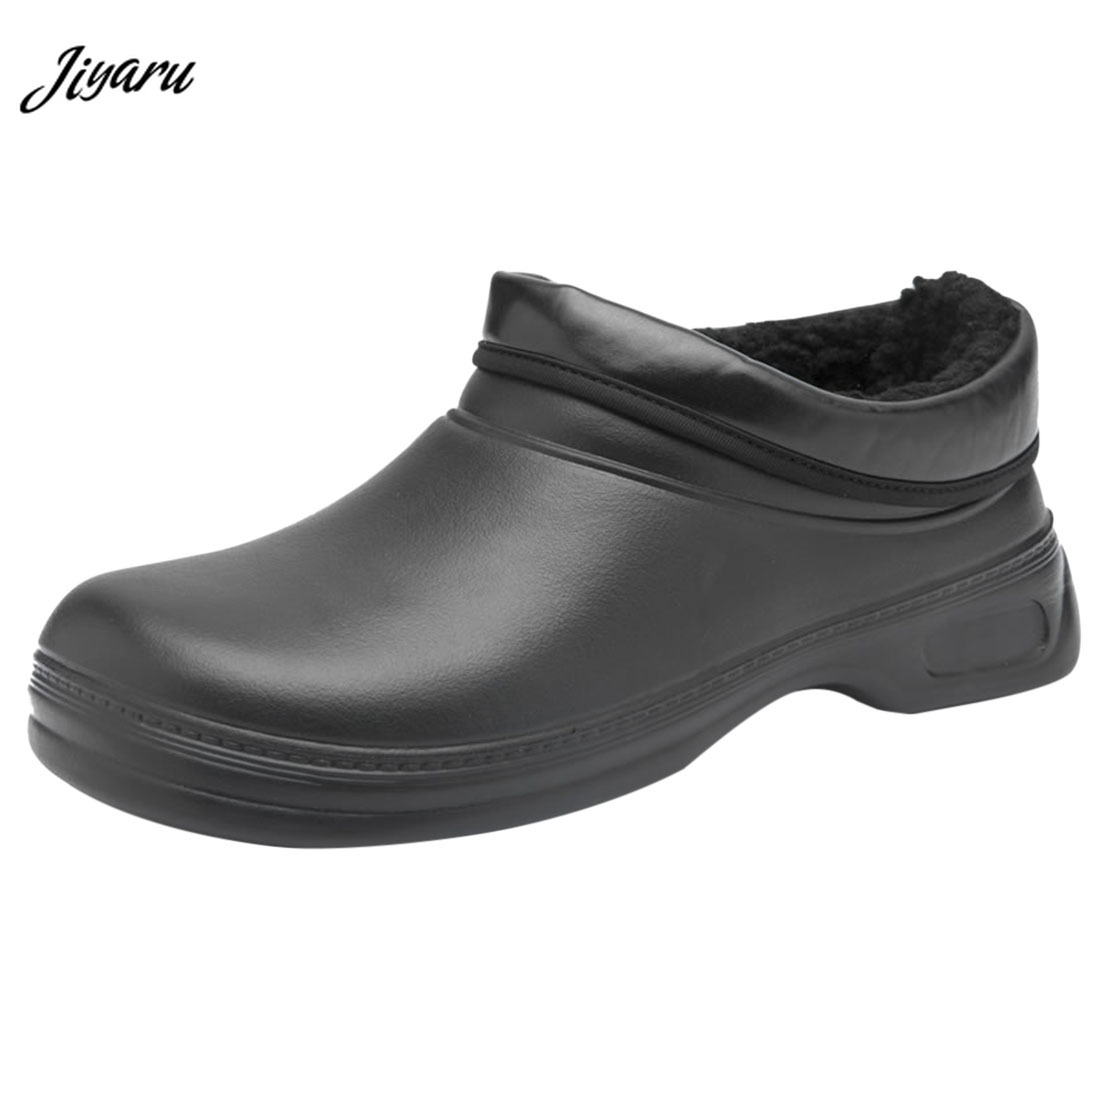 Kitchen Work Shoes: 2018 Hot Selling Restaurant Catering Kitchen Work Shoes